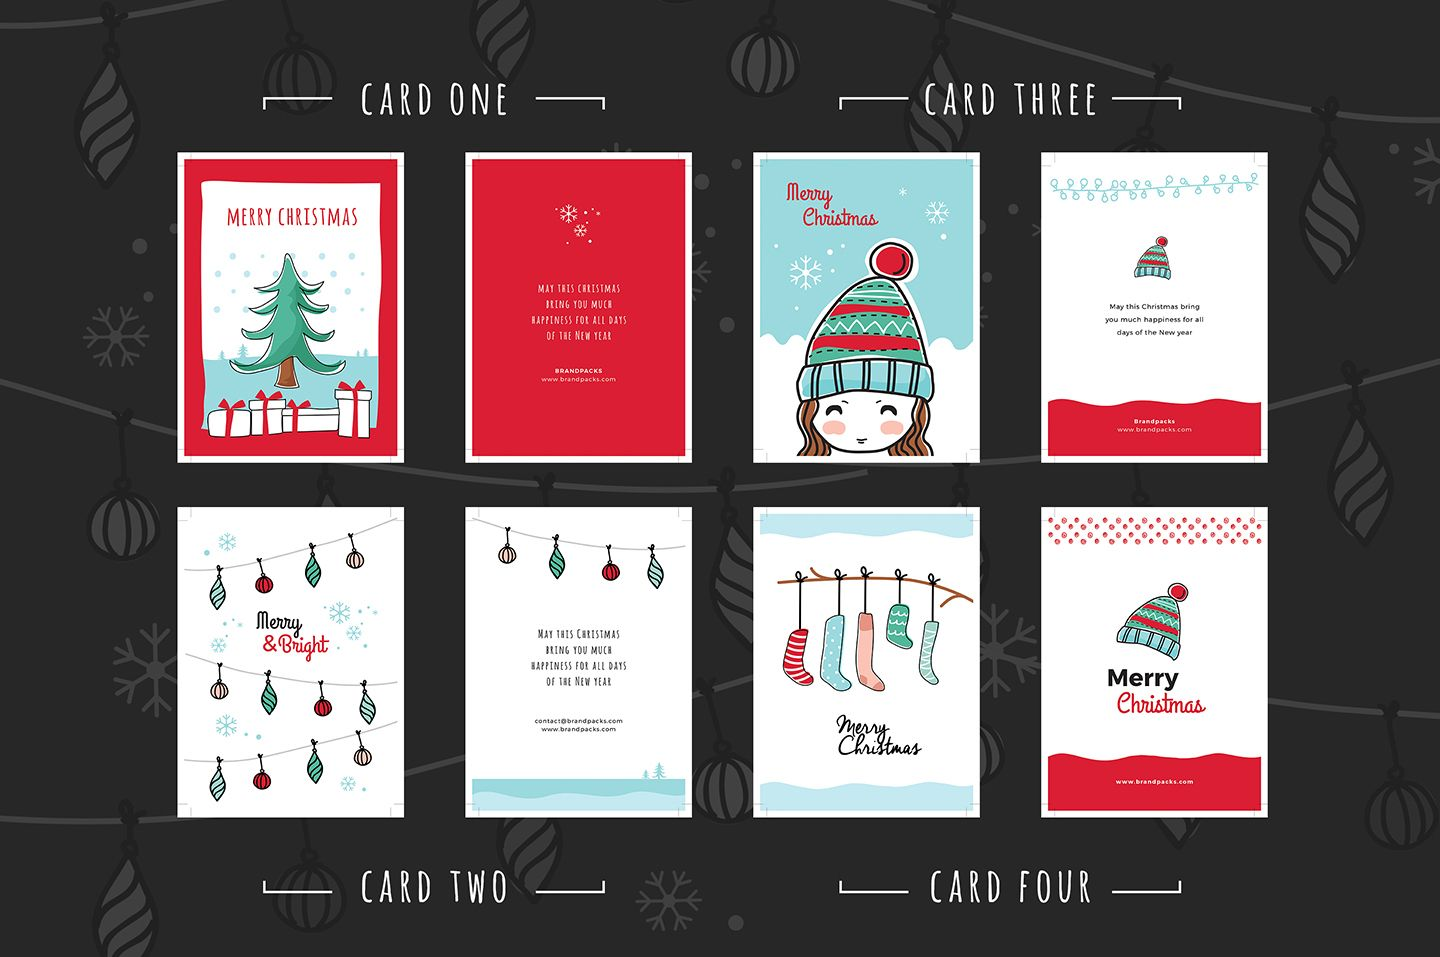 Free Christmas Card Templates For Photoshop Illustrator With Regard To Ch Photoshop Christmas Card Template Holiday Card Template Birthday Card Template Free